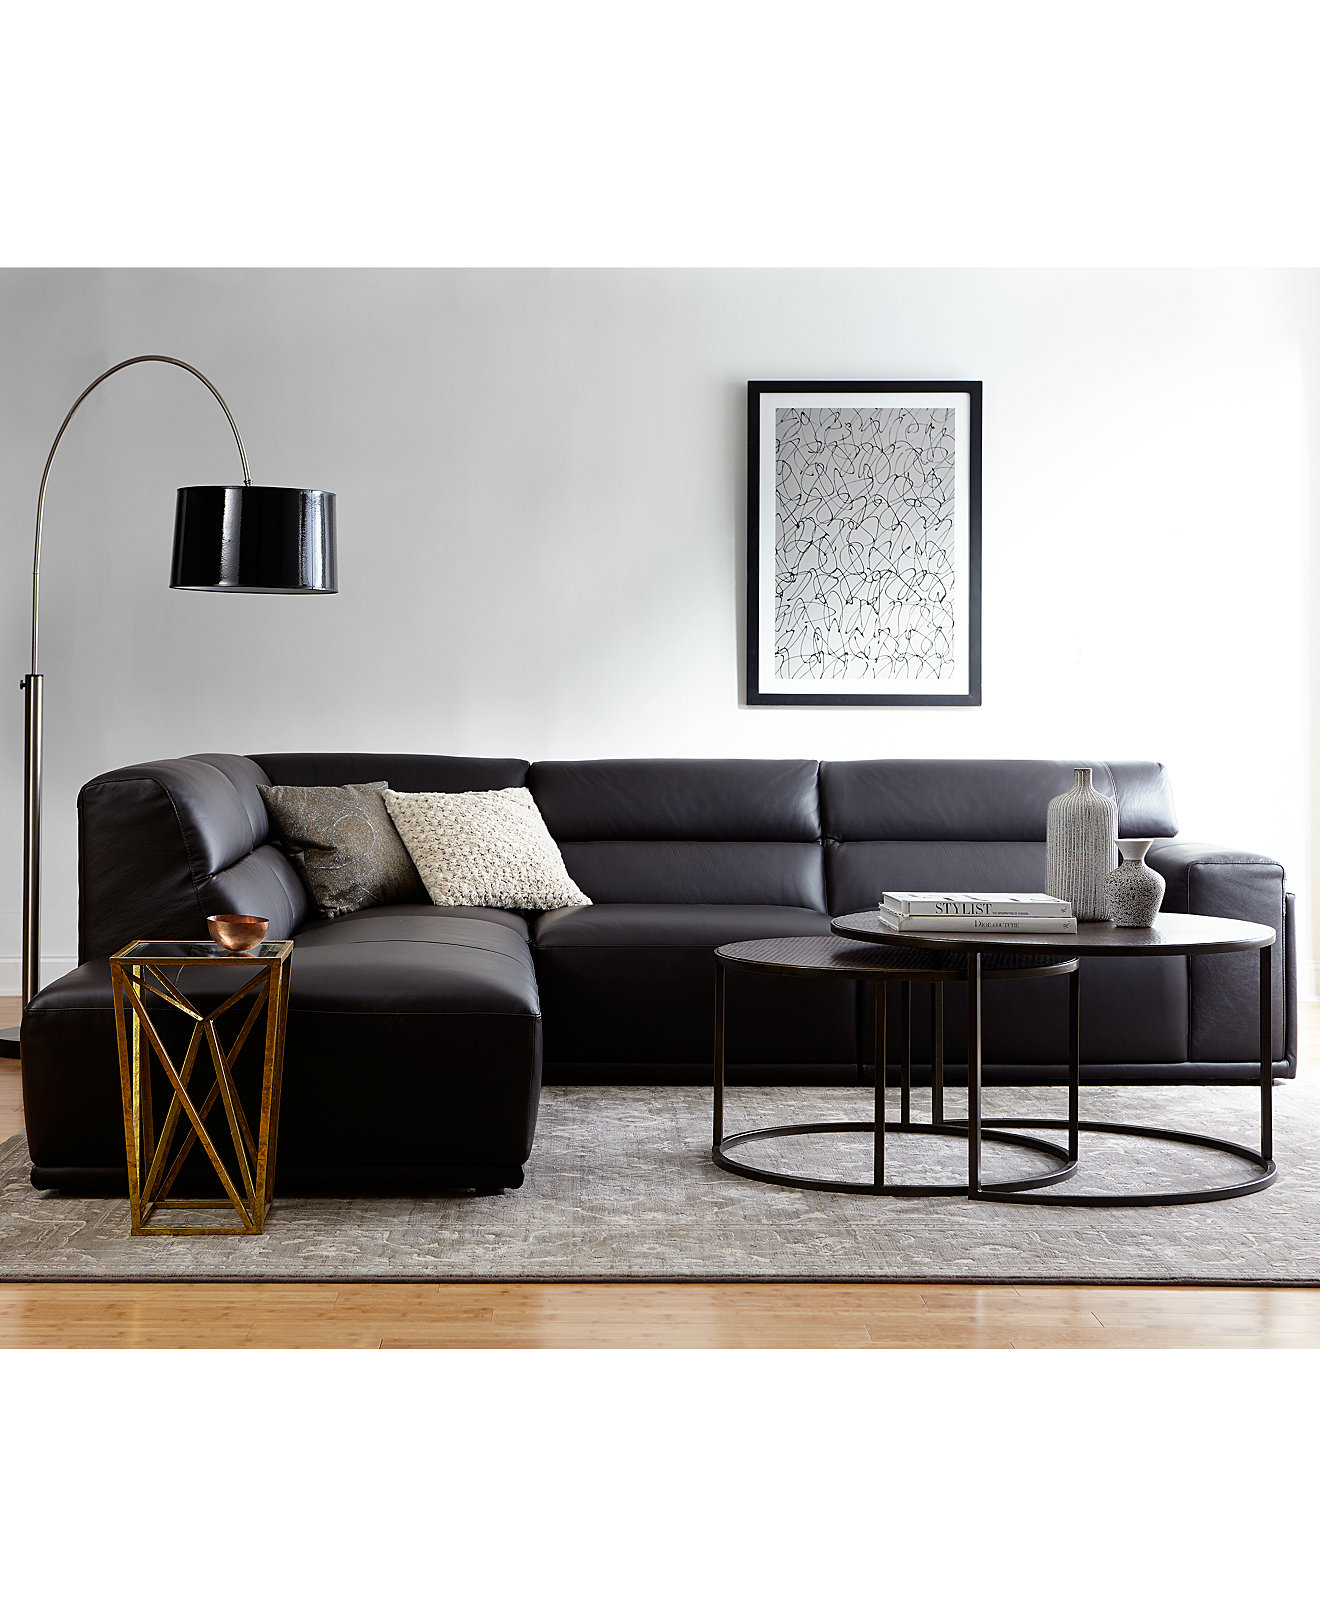 Daryl leather sectional collection